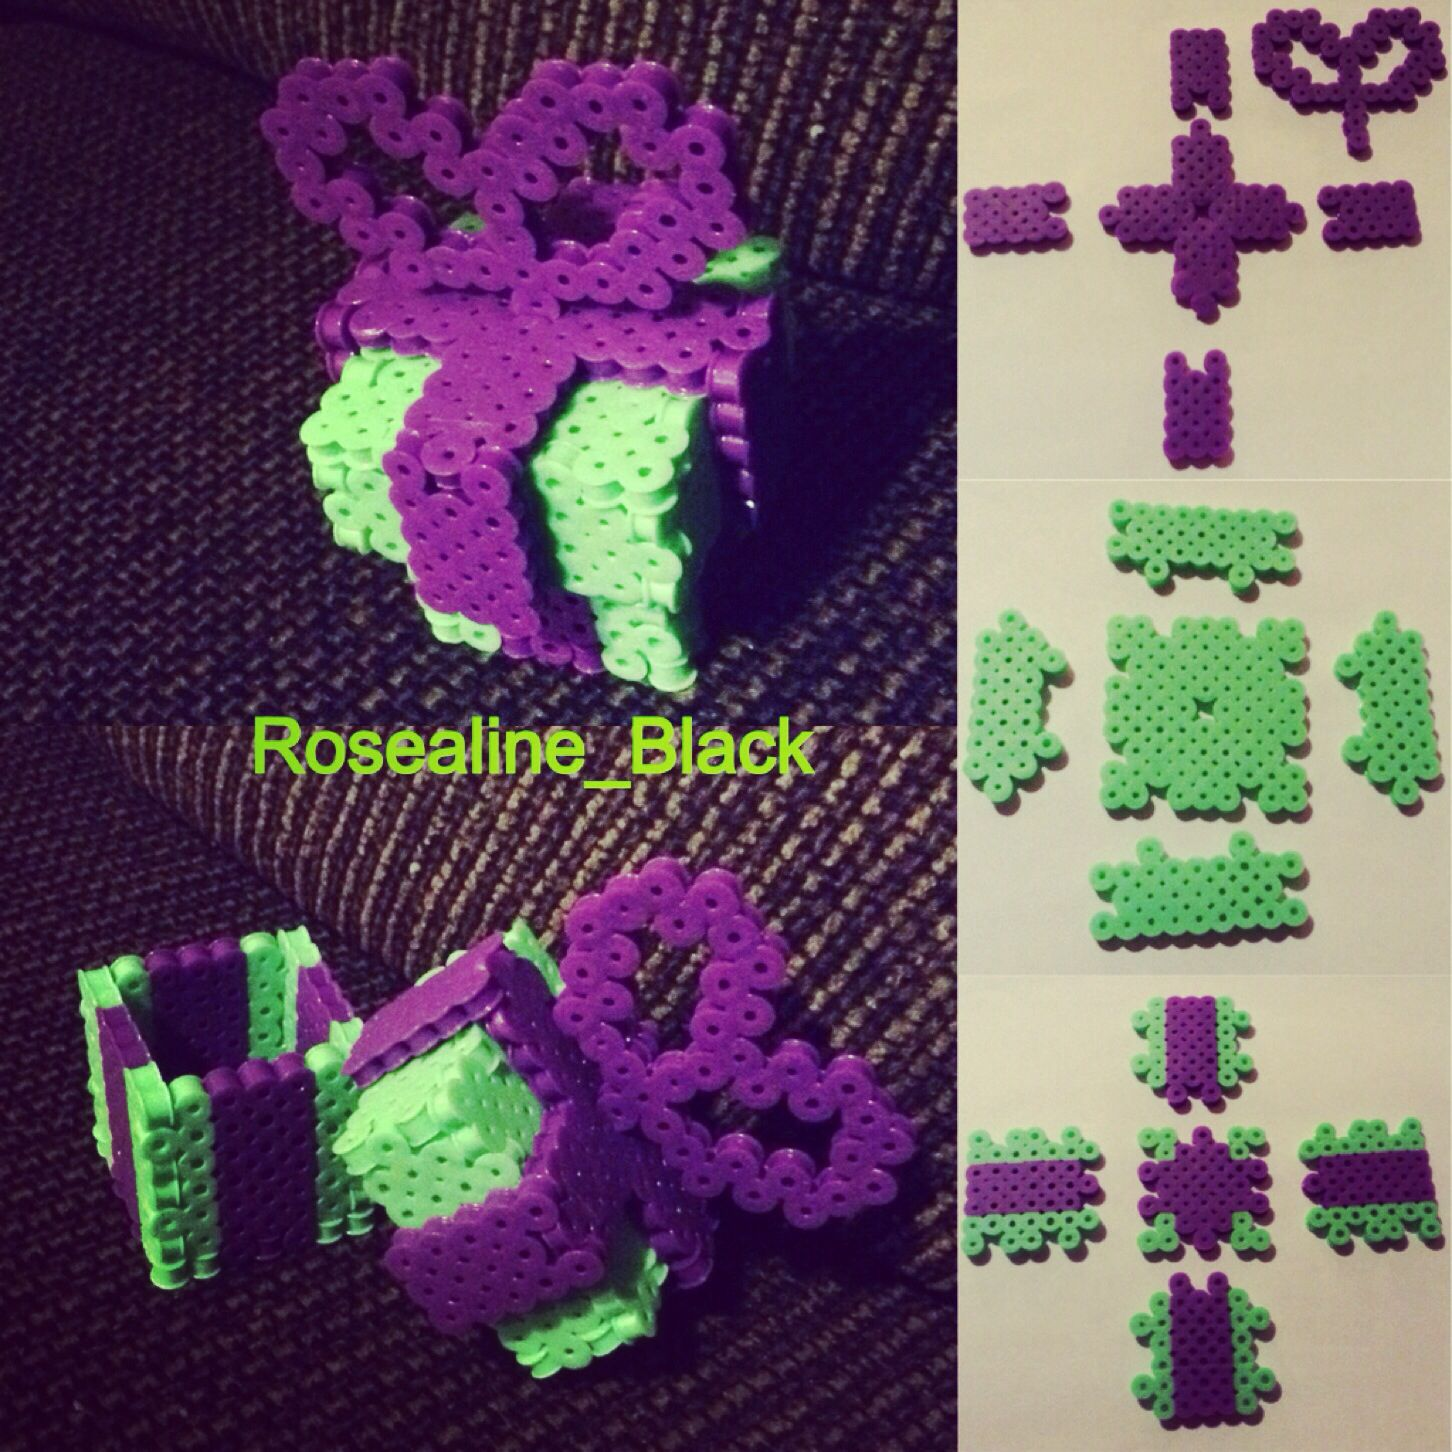 3d perler bead box pattern designed and made by rosealine black [ 1452 x 1452 Pixel ]